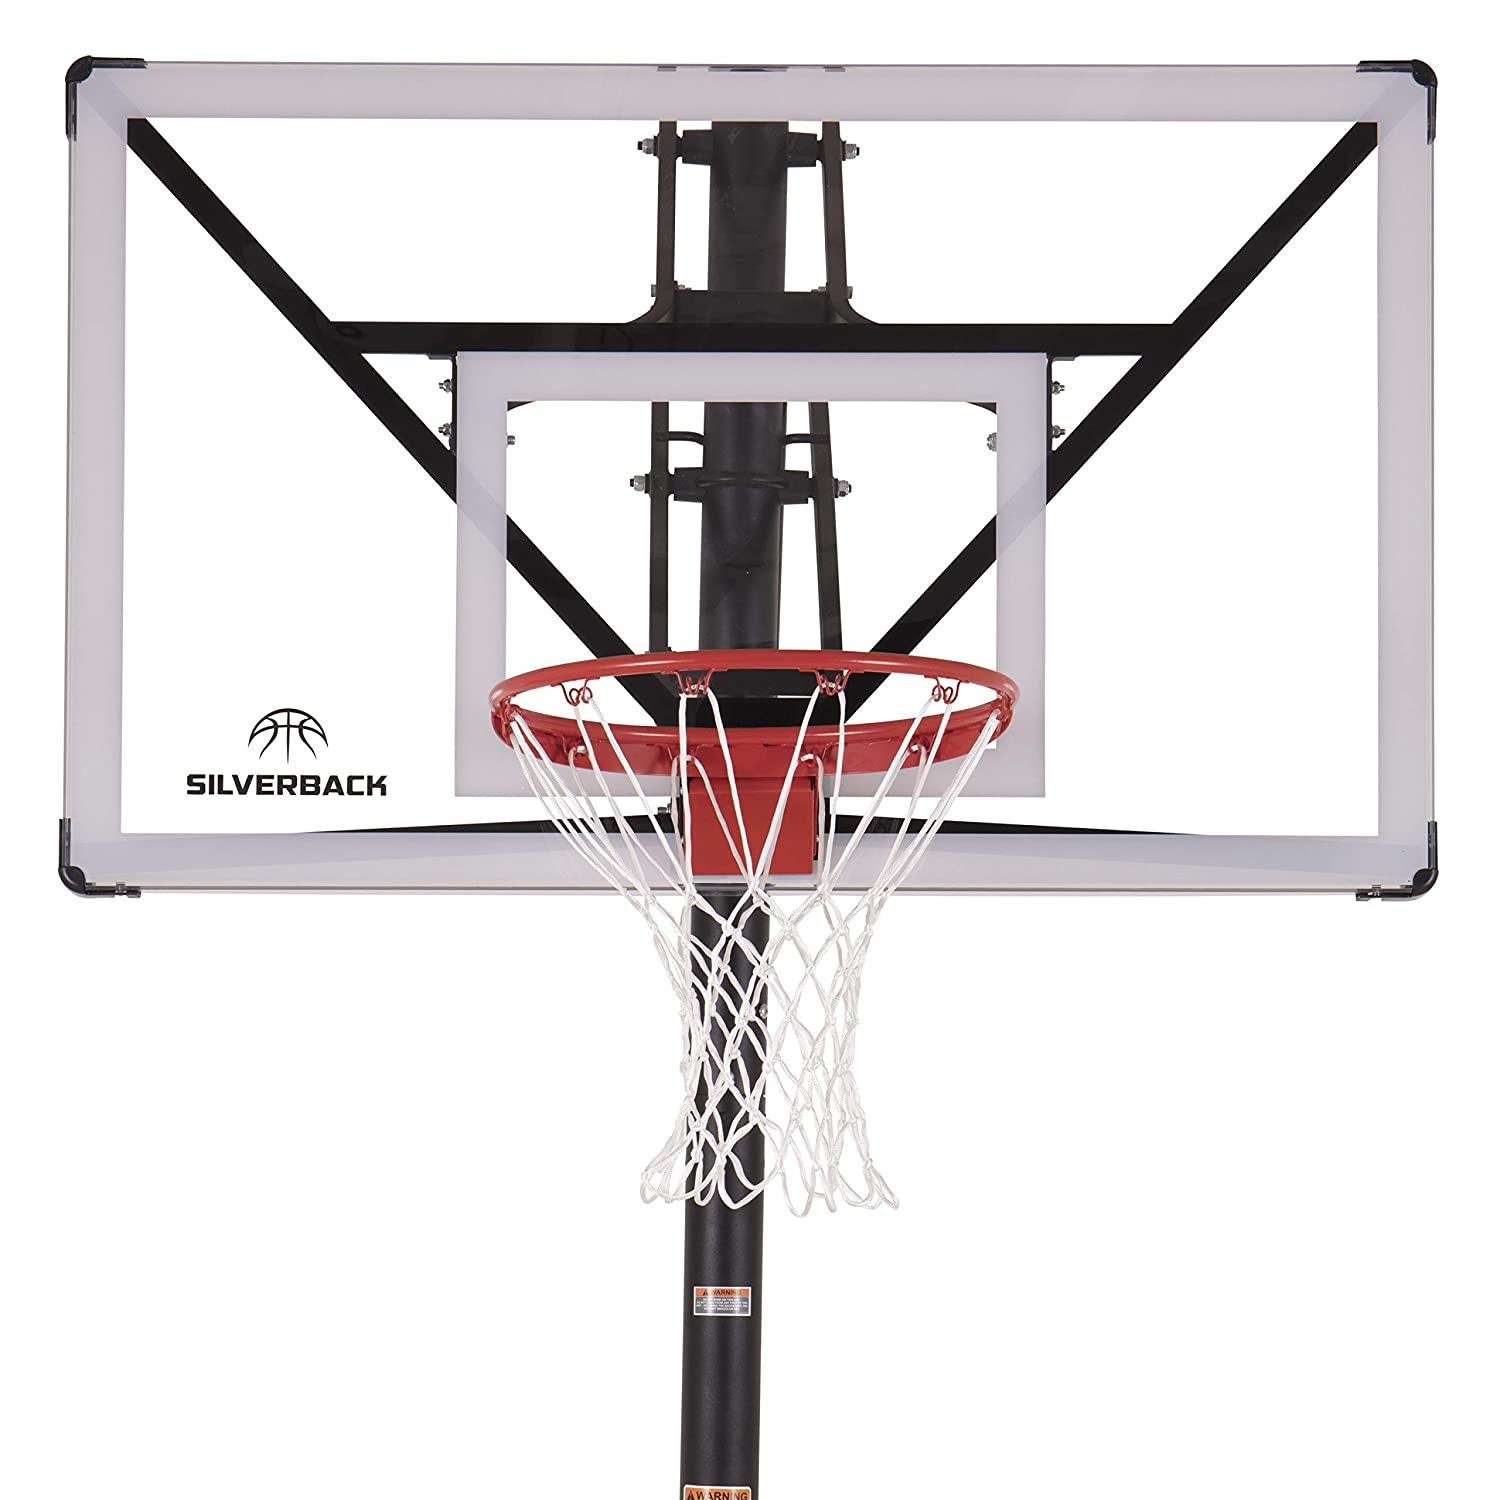 "Silverback NXT 54"" In-Ground Basketball Hoop with Adjustable-Height Backboard and QuickPlay Design"